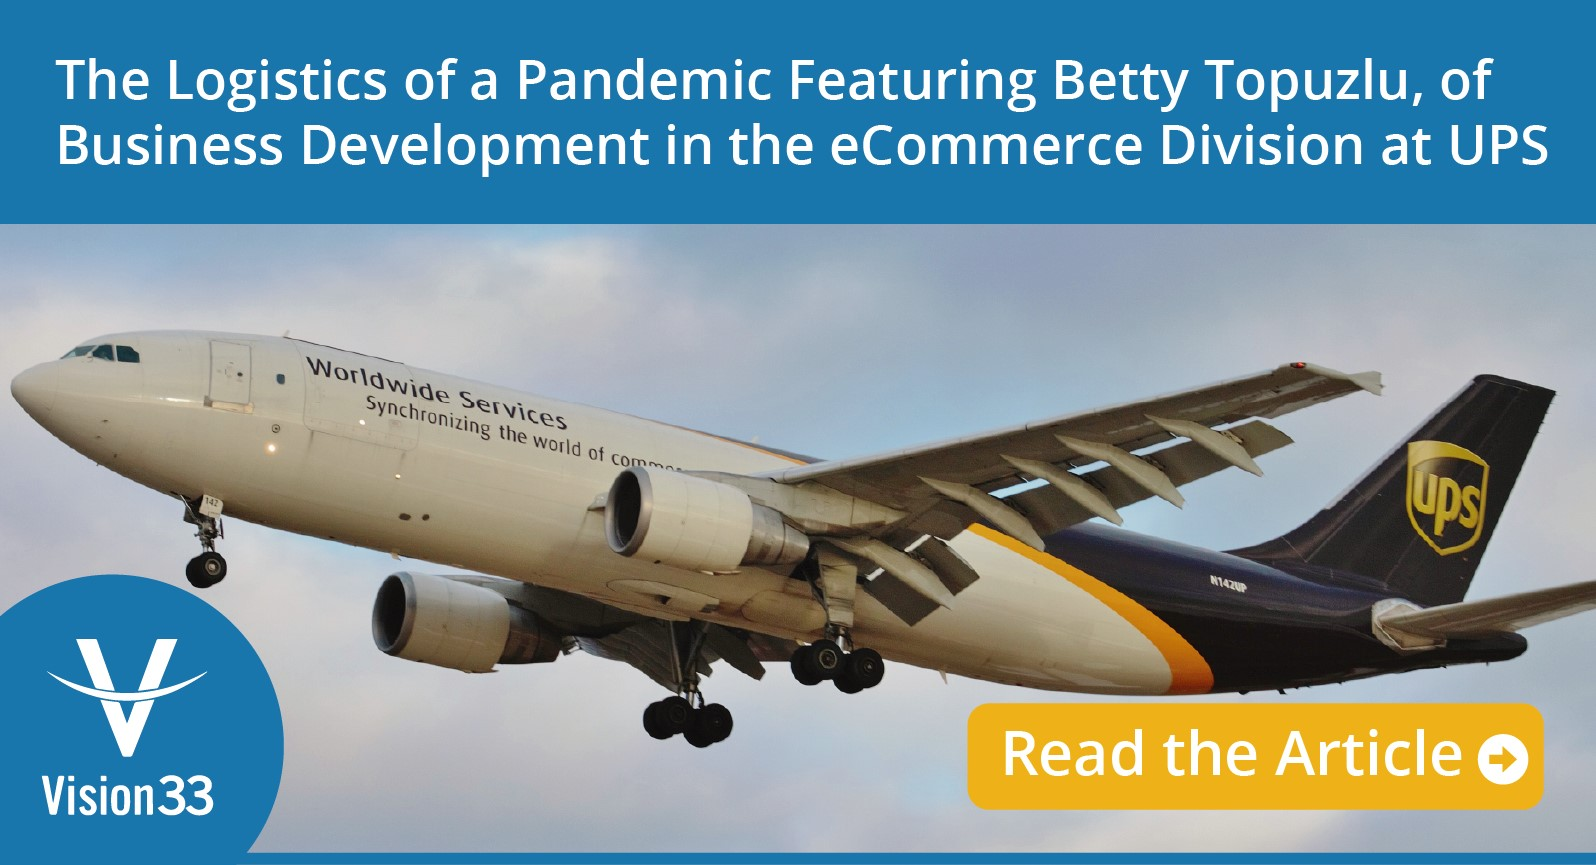 The Logistics of a Pandemic Featuring Betty Topuzlu, of Business Development in the eCommerce Division at UPS